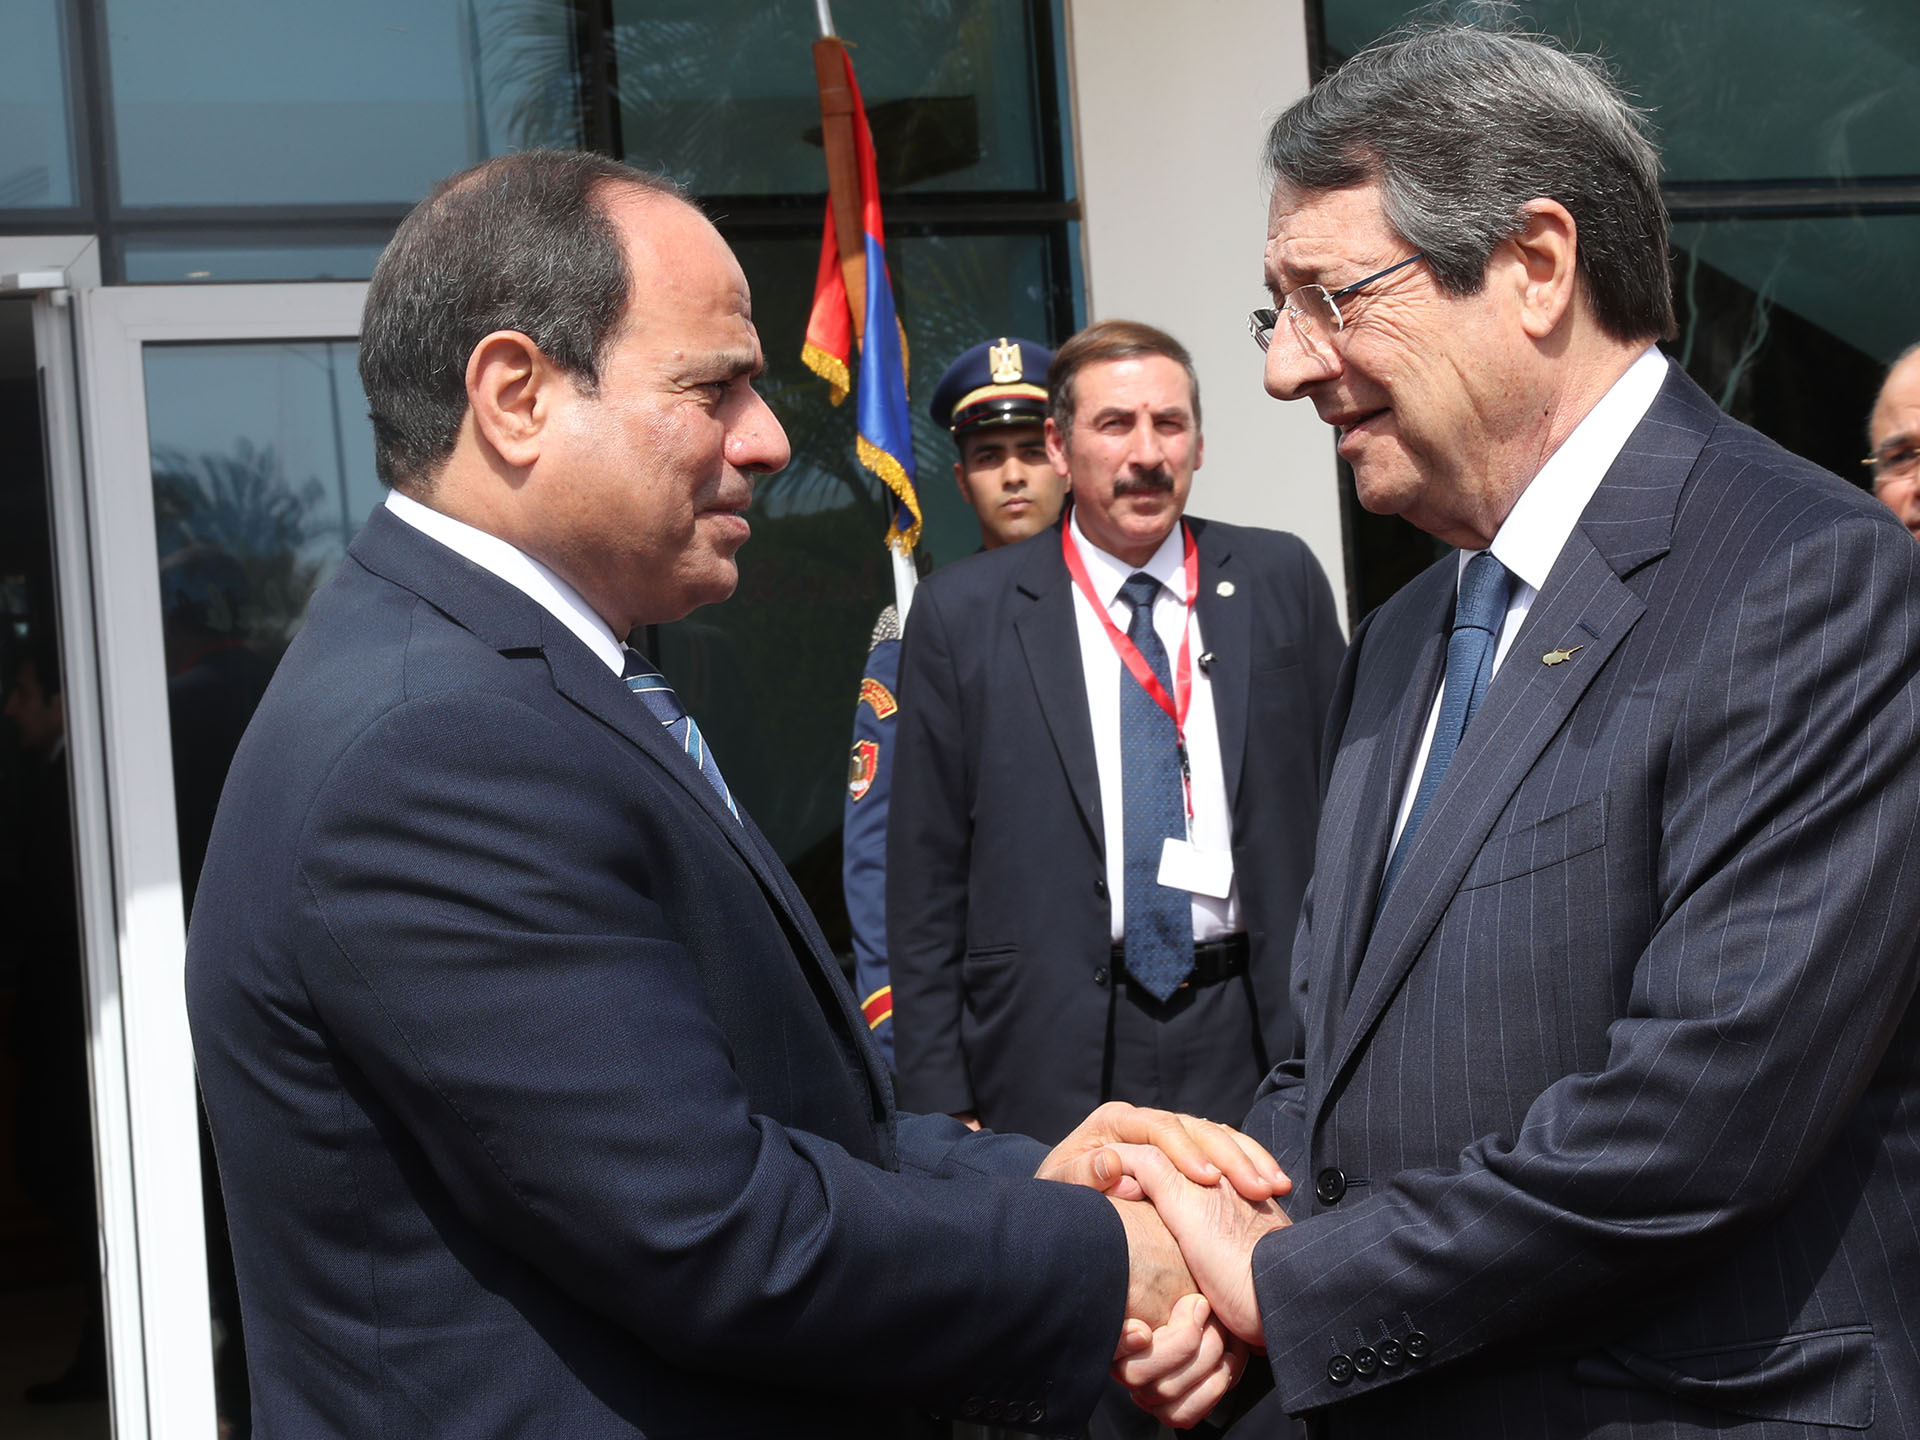 Mr Nicos Anastasiades had a meeting with the President of the Arab Republic of Egypt